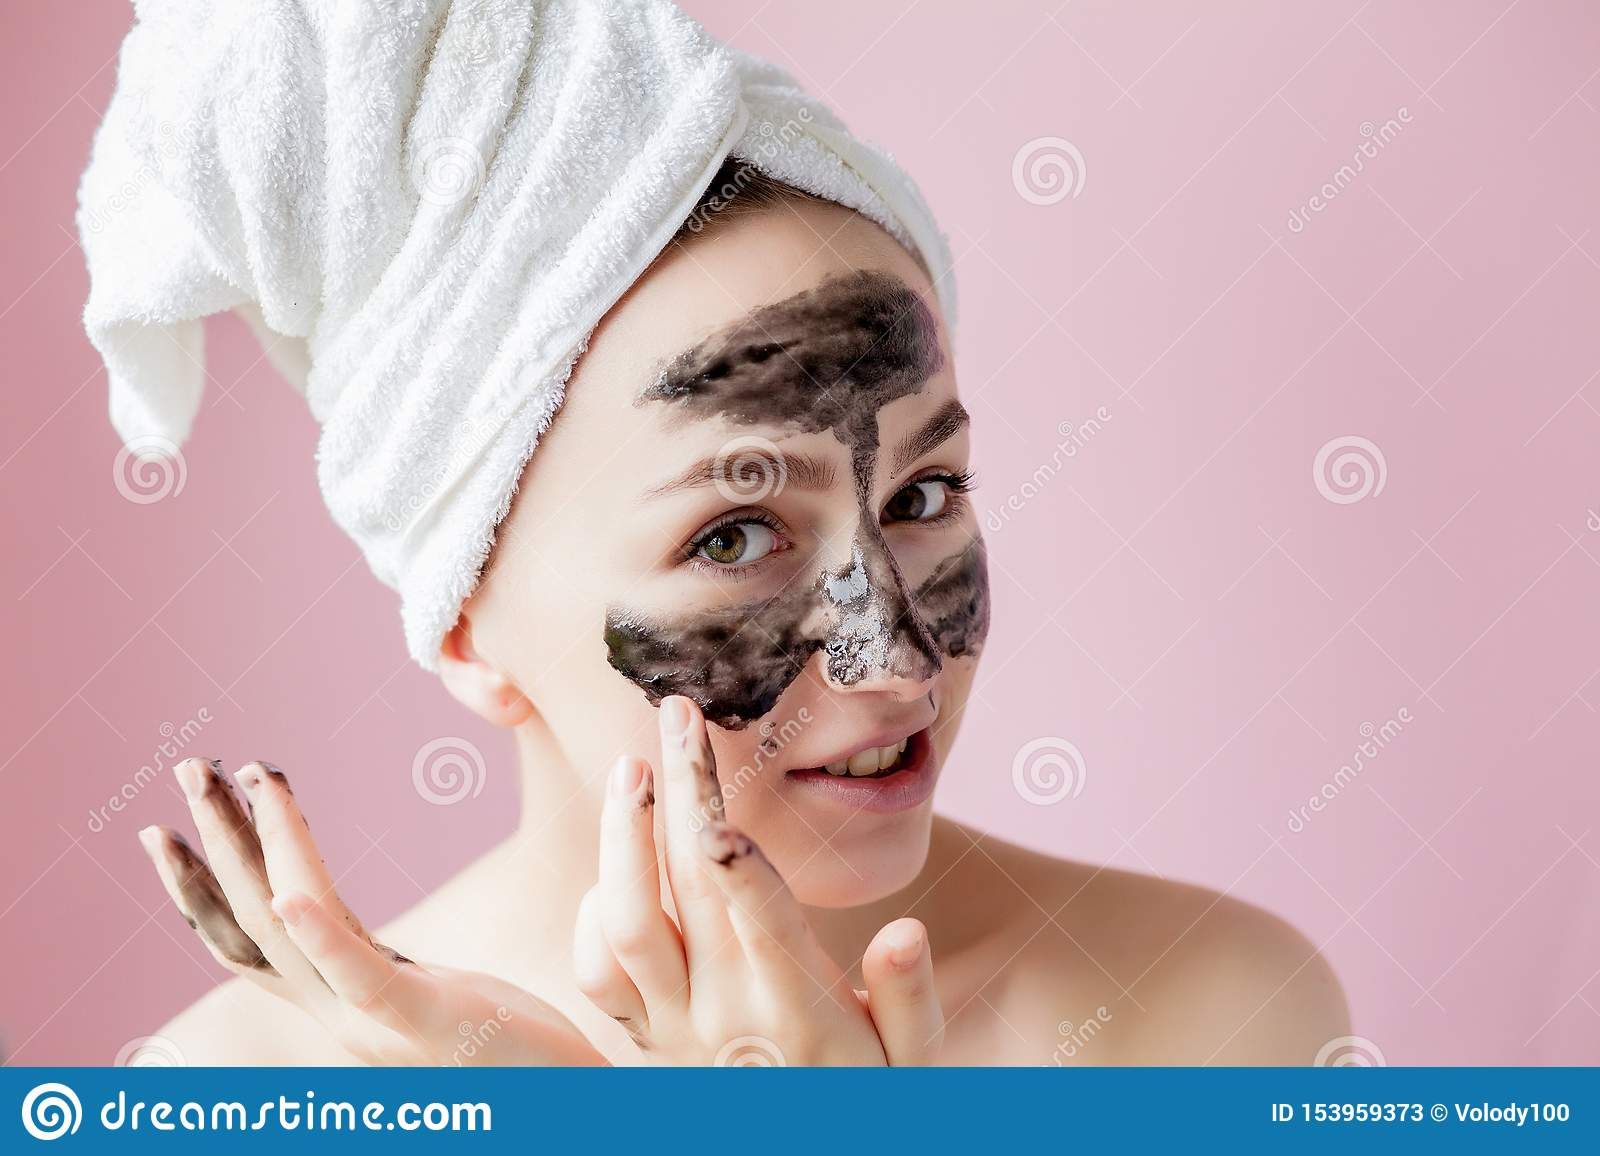 Beauty Cosmetic Peeling. Closeup Beautiful Young Female With Black Peel Off Mask On Skin. Closeup Of Attractive Woman With